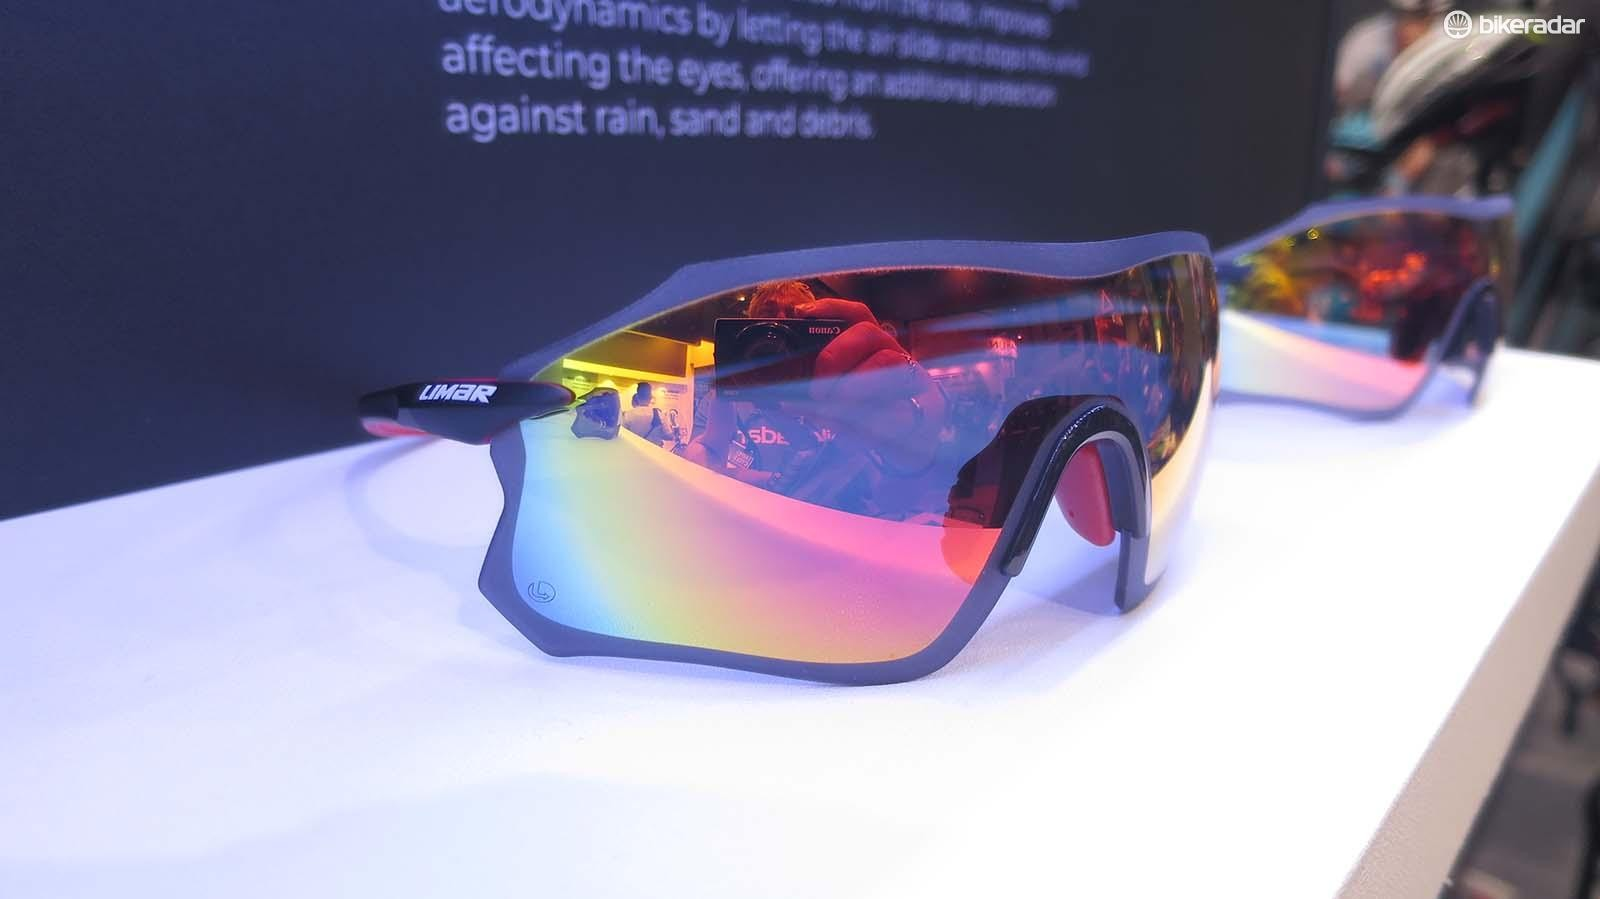 Or a rather bling-looking flash mirror lens